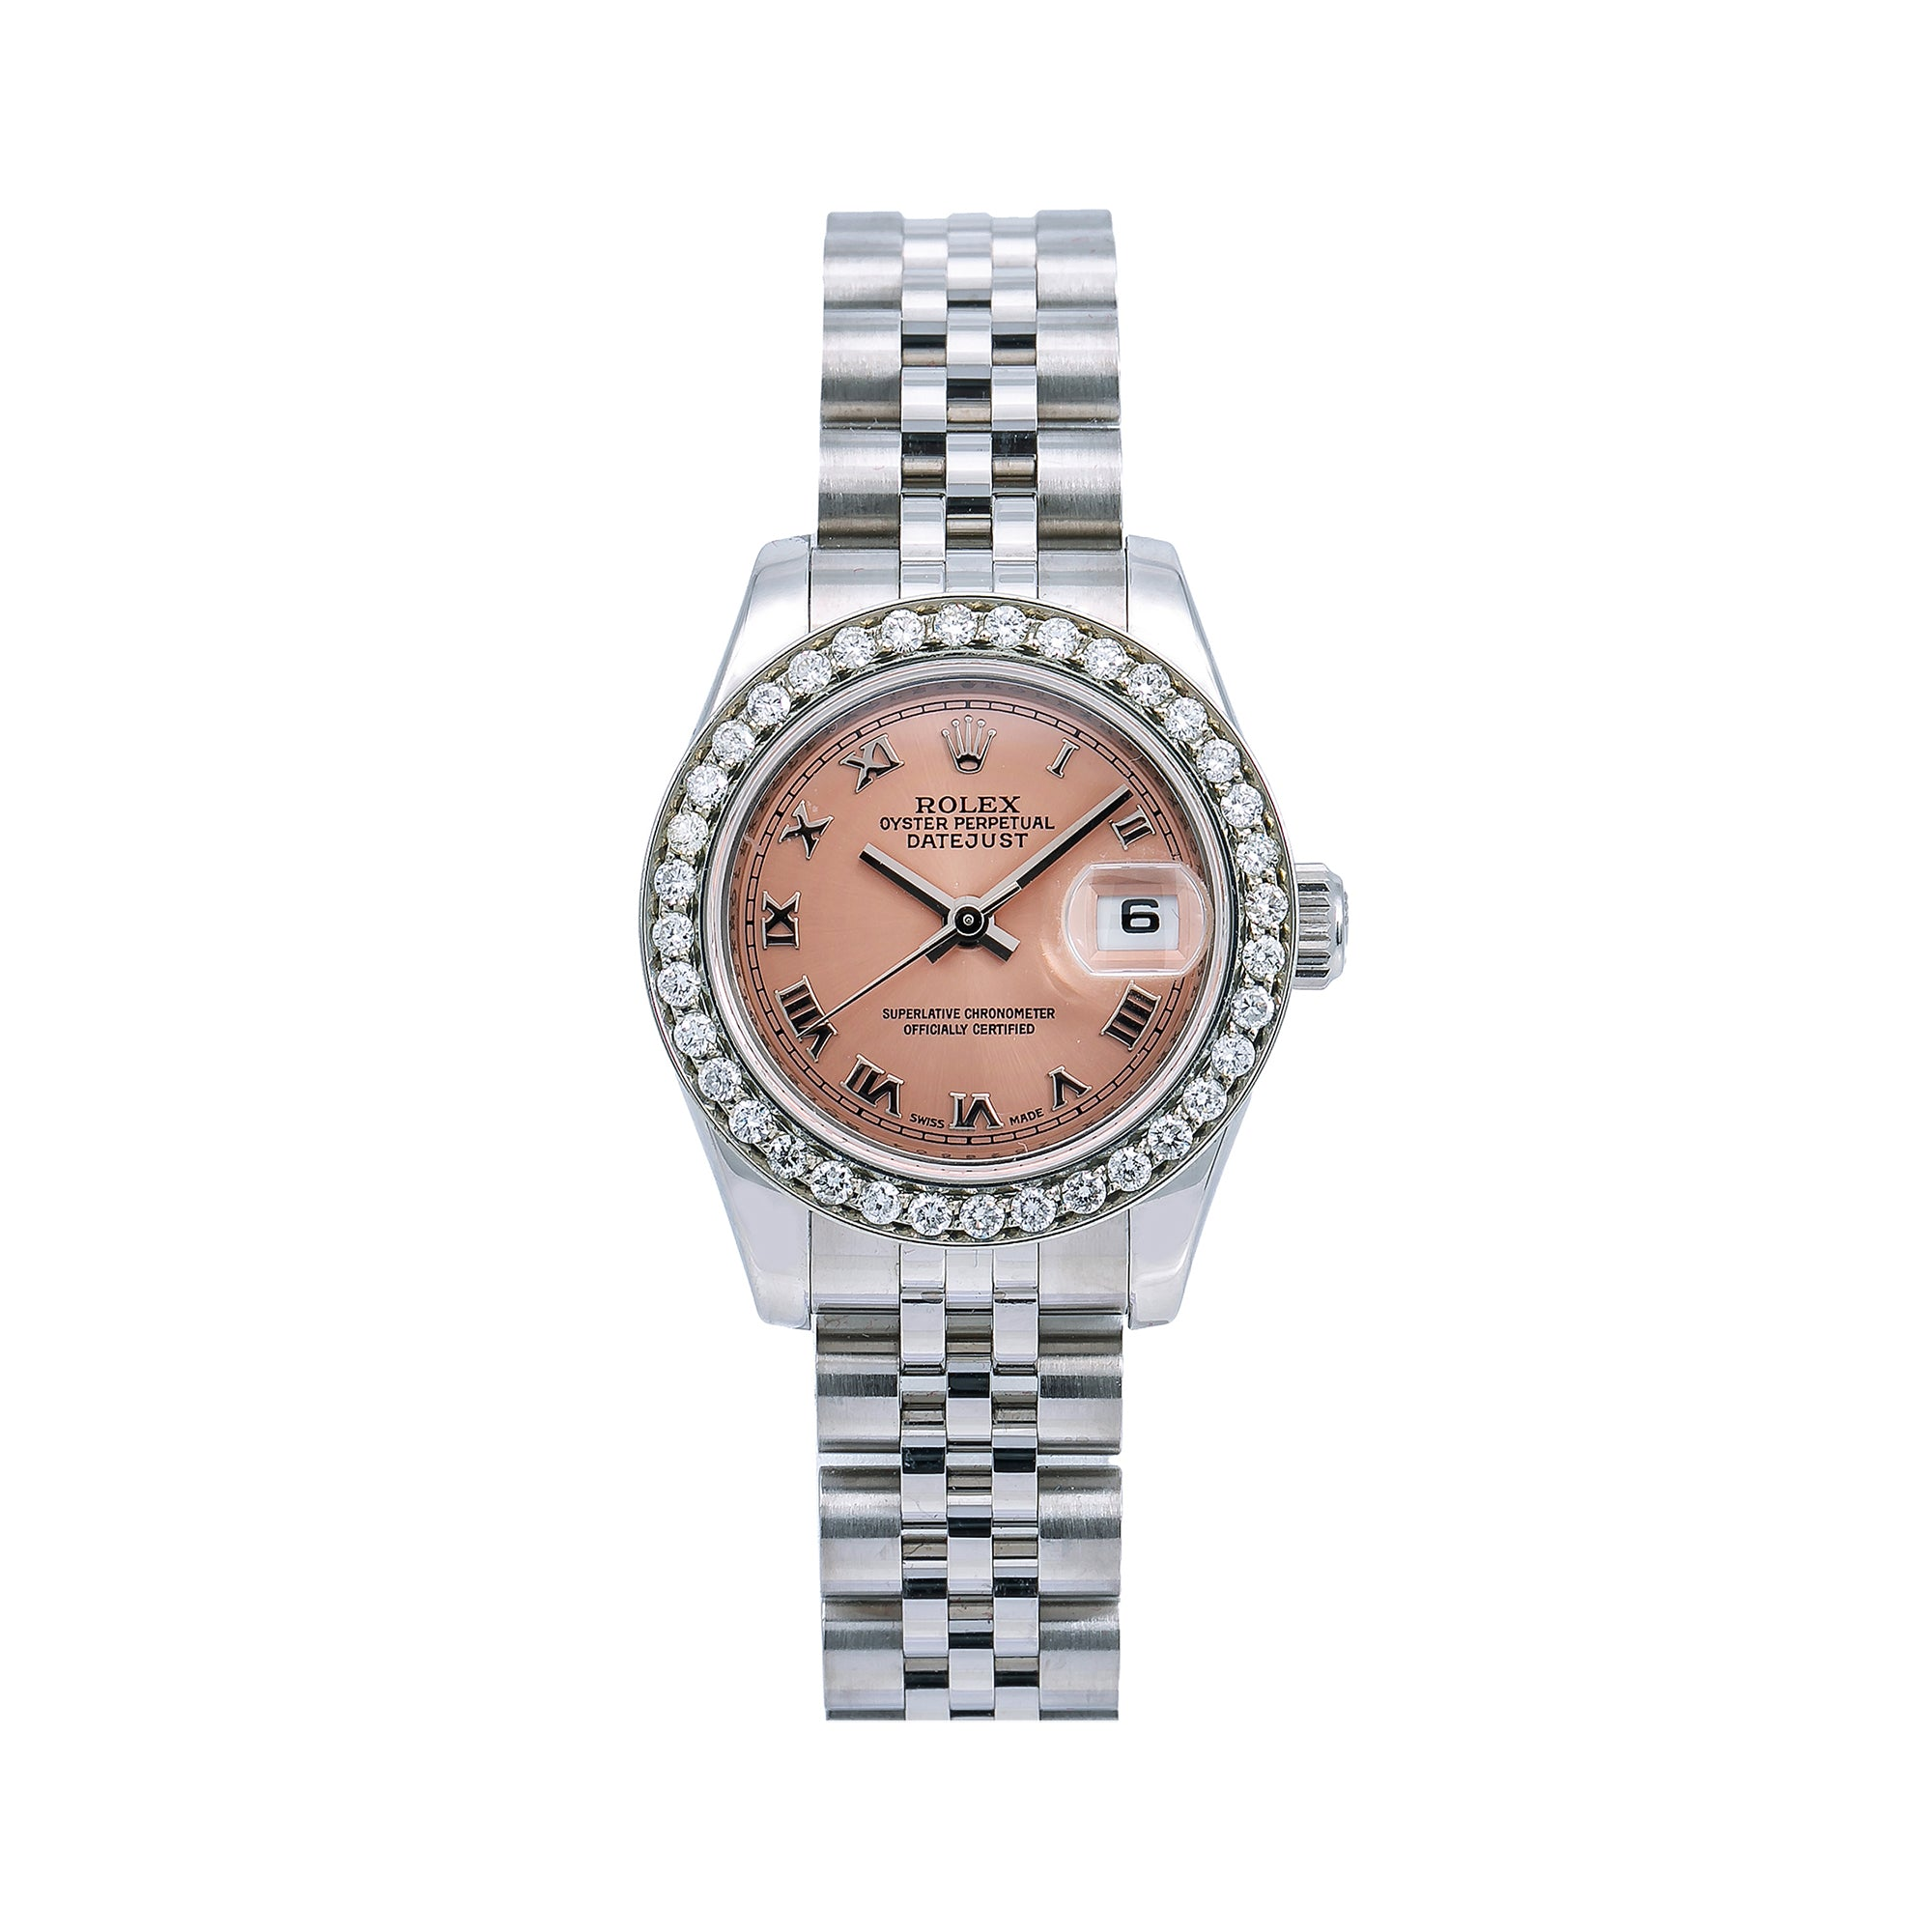 Rolex Lady-Datejust Diamond Watch, 179160 26mm, Salmon Dial With 0.80 CT Diamonds